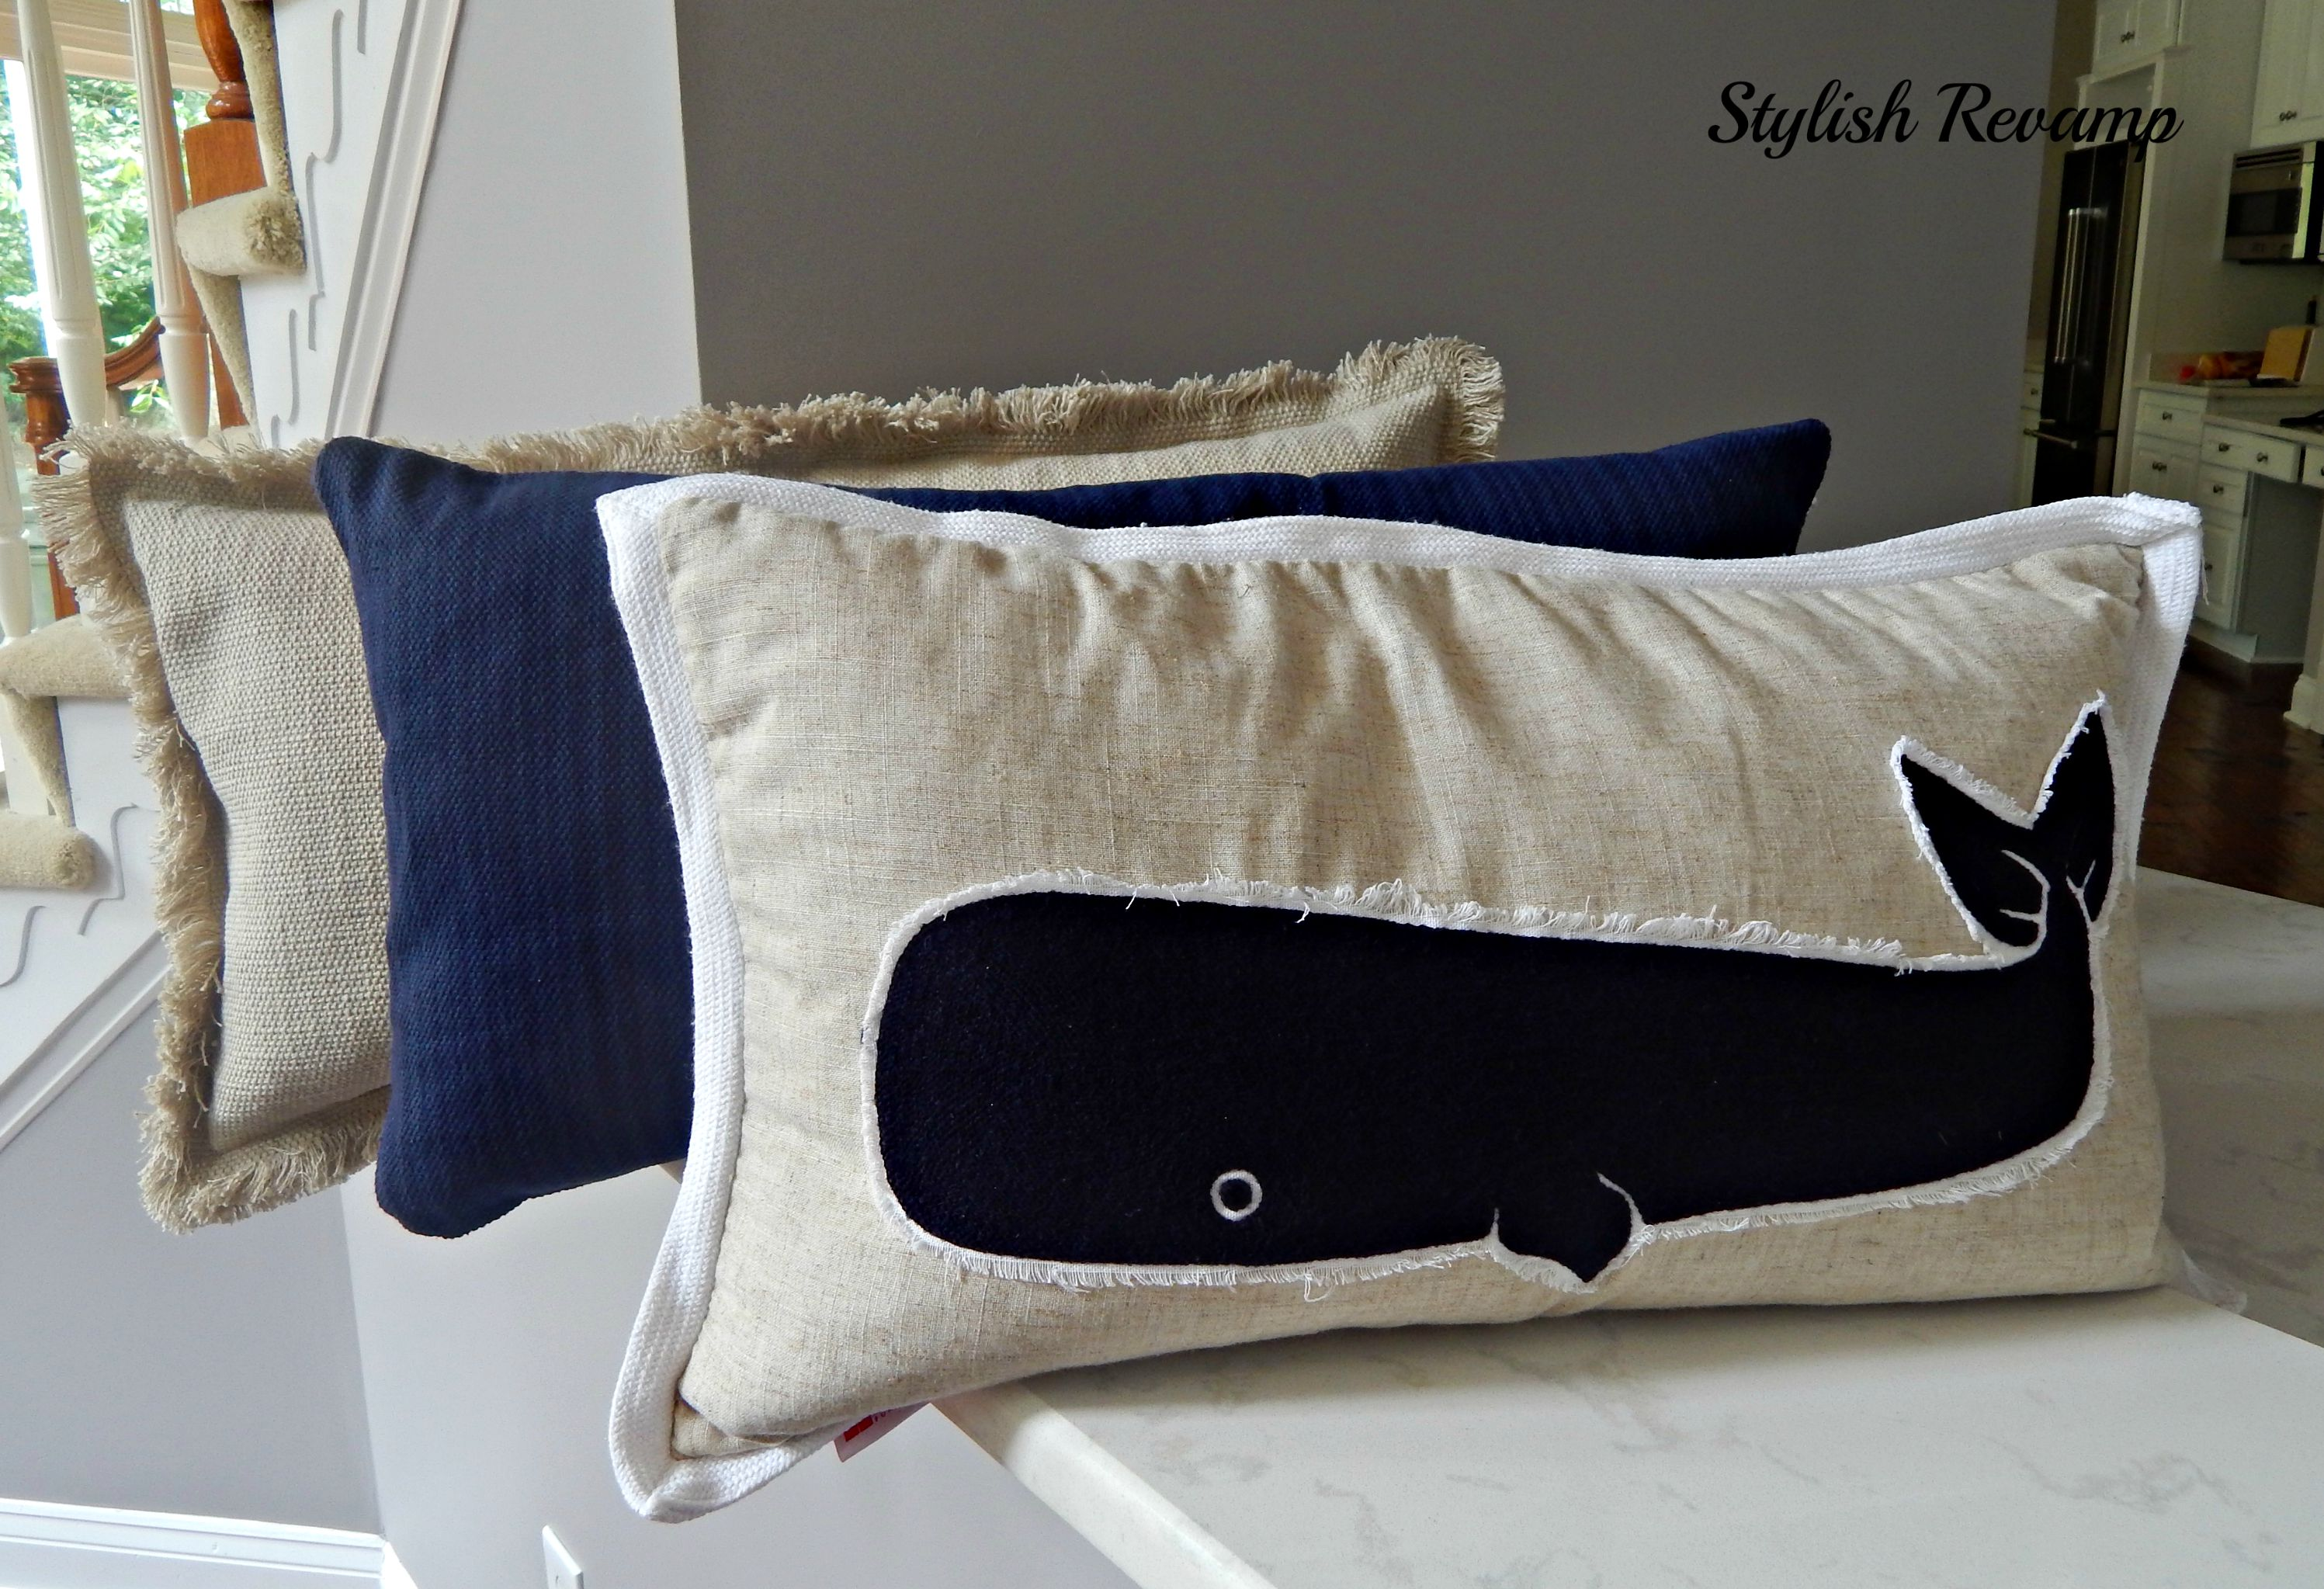 Decorative Pillows From Marshalls : Finding the Goods - Stylish Revamp